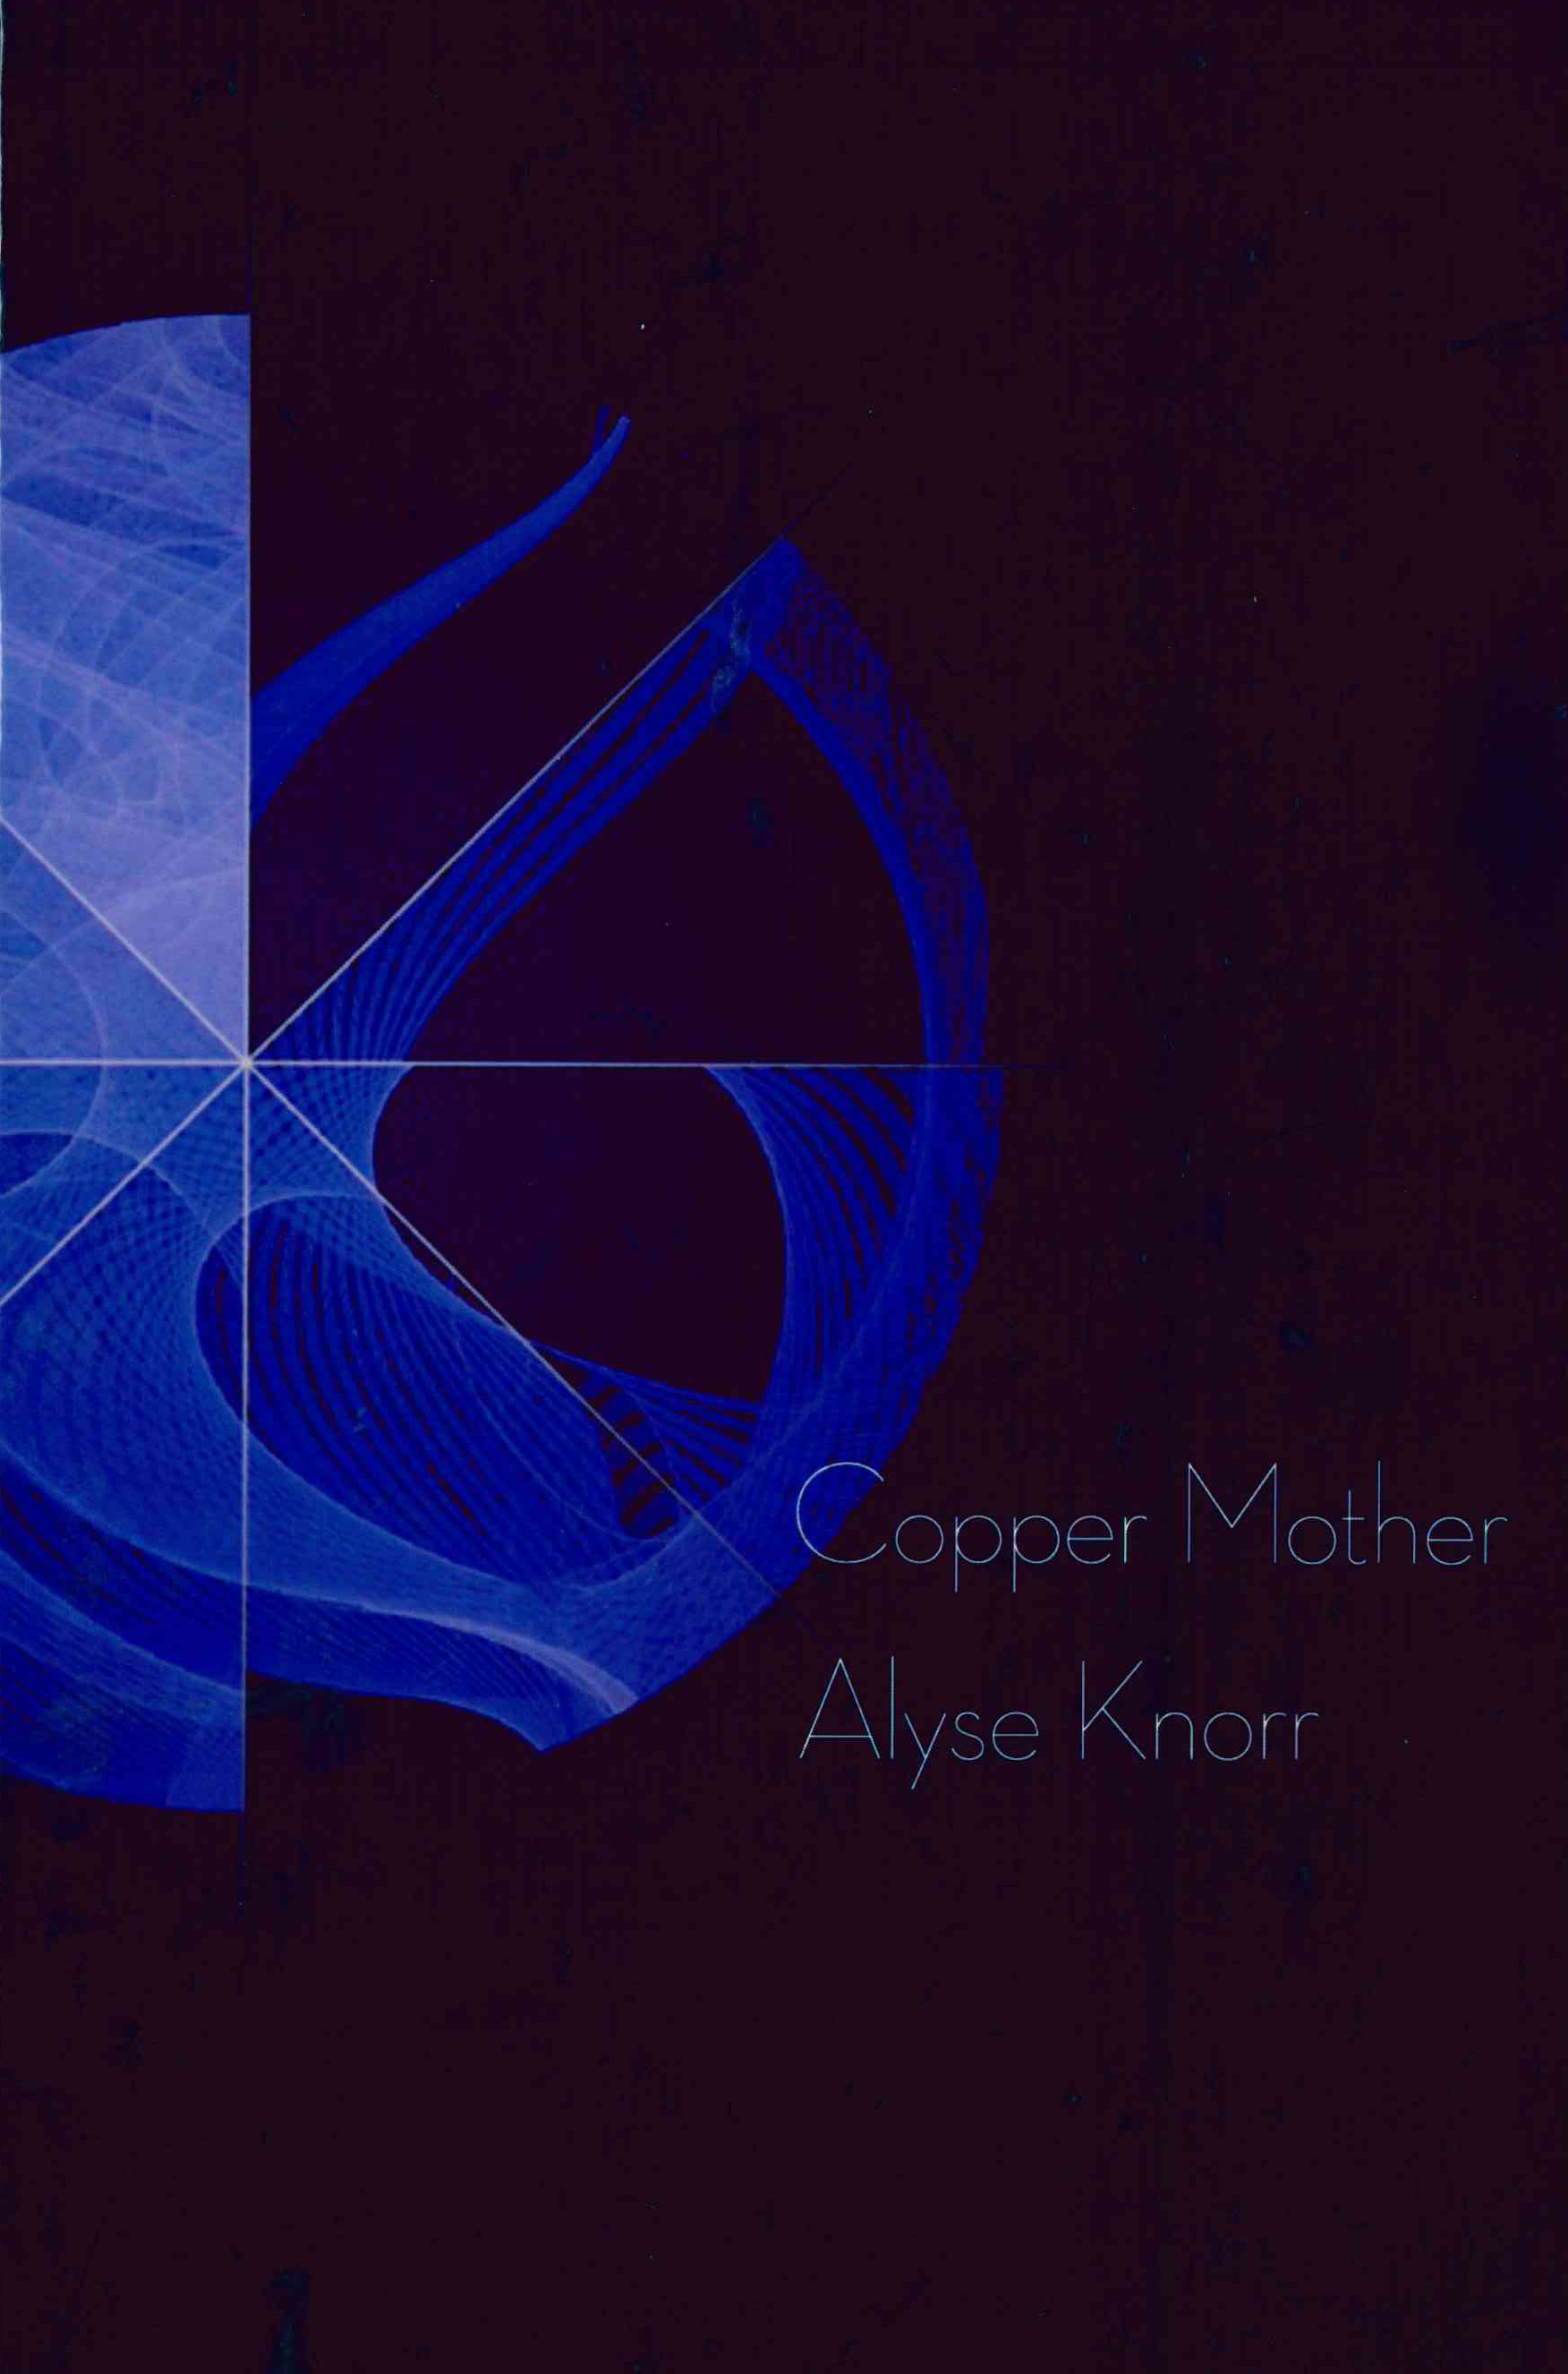 Copper Mother